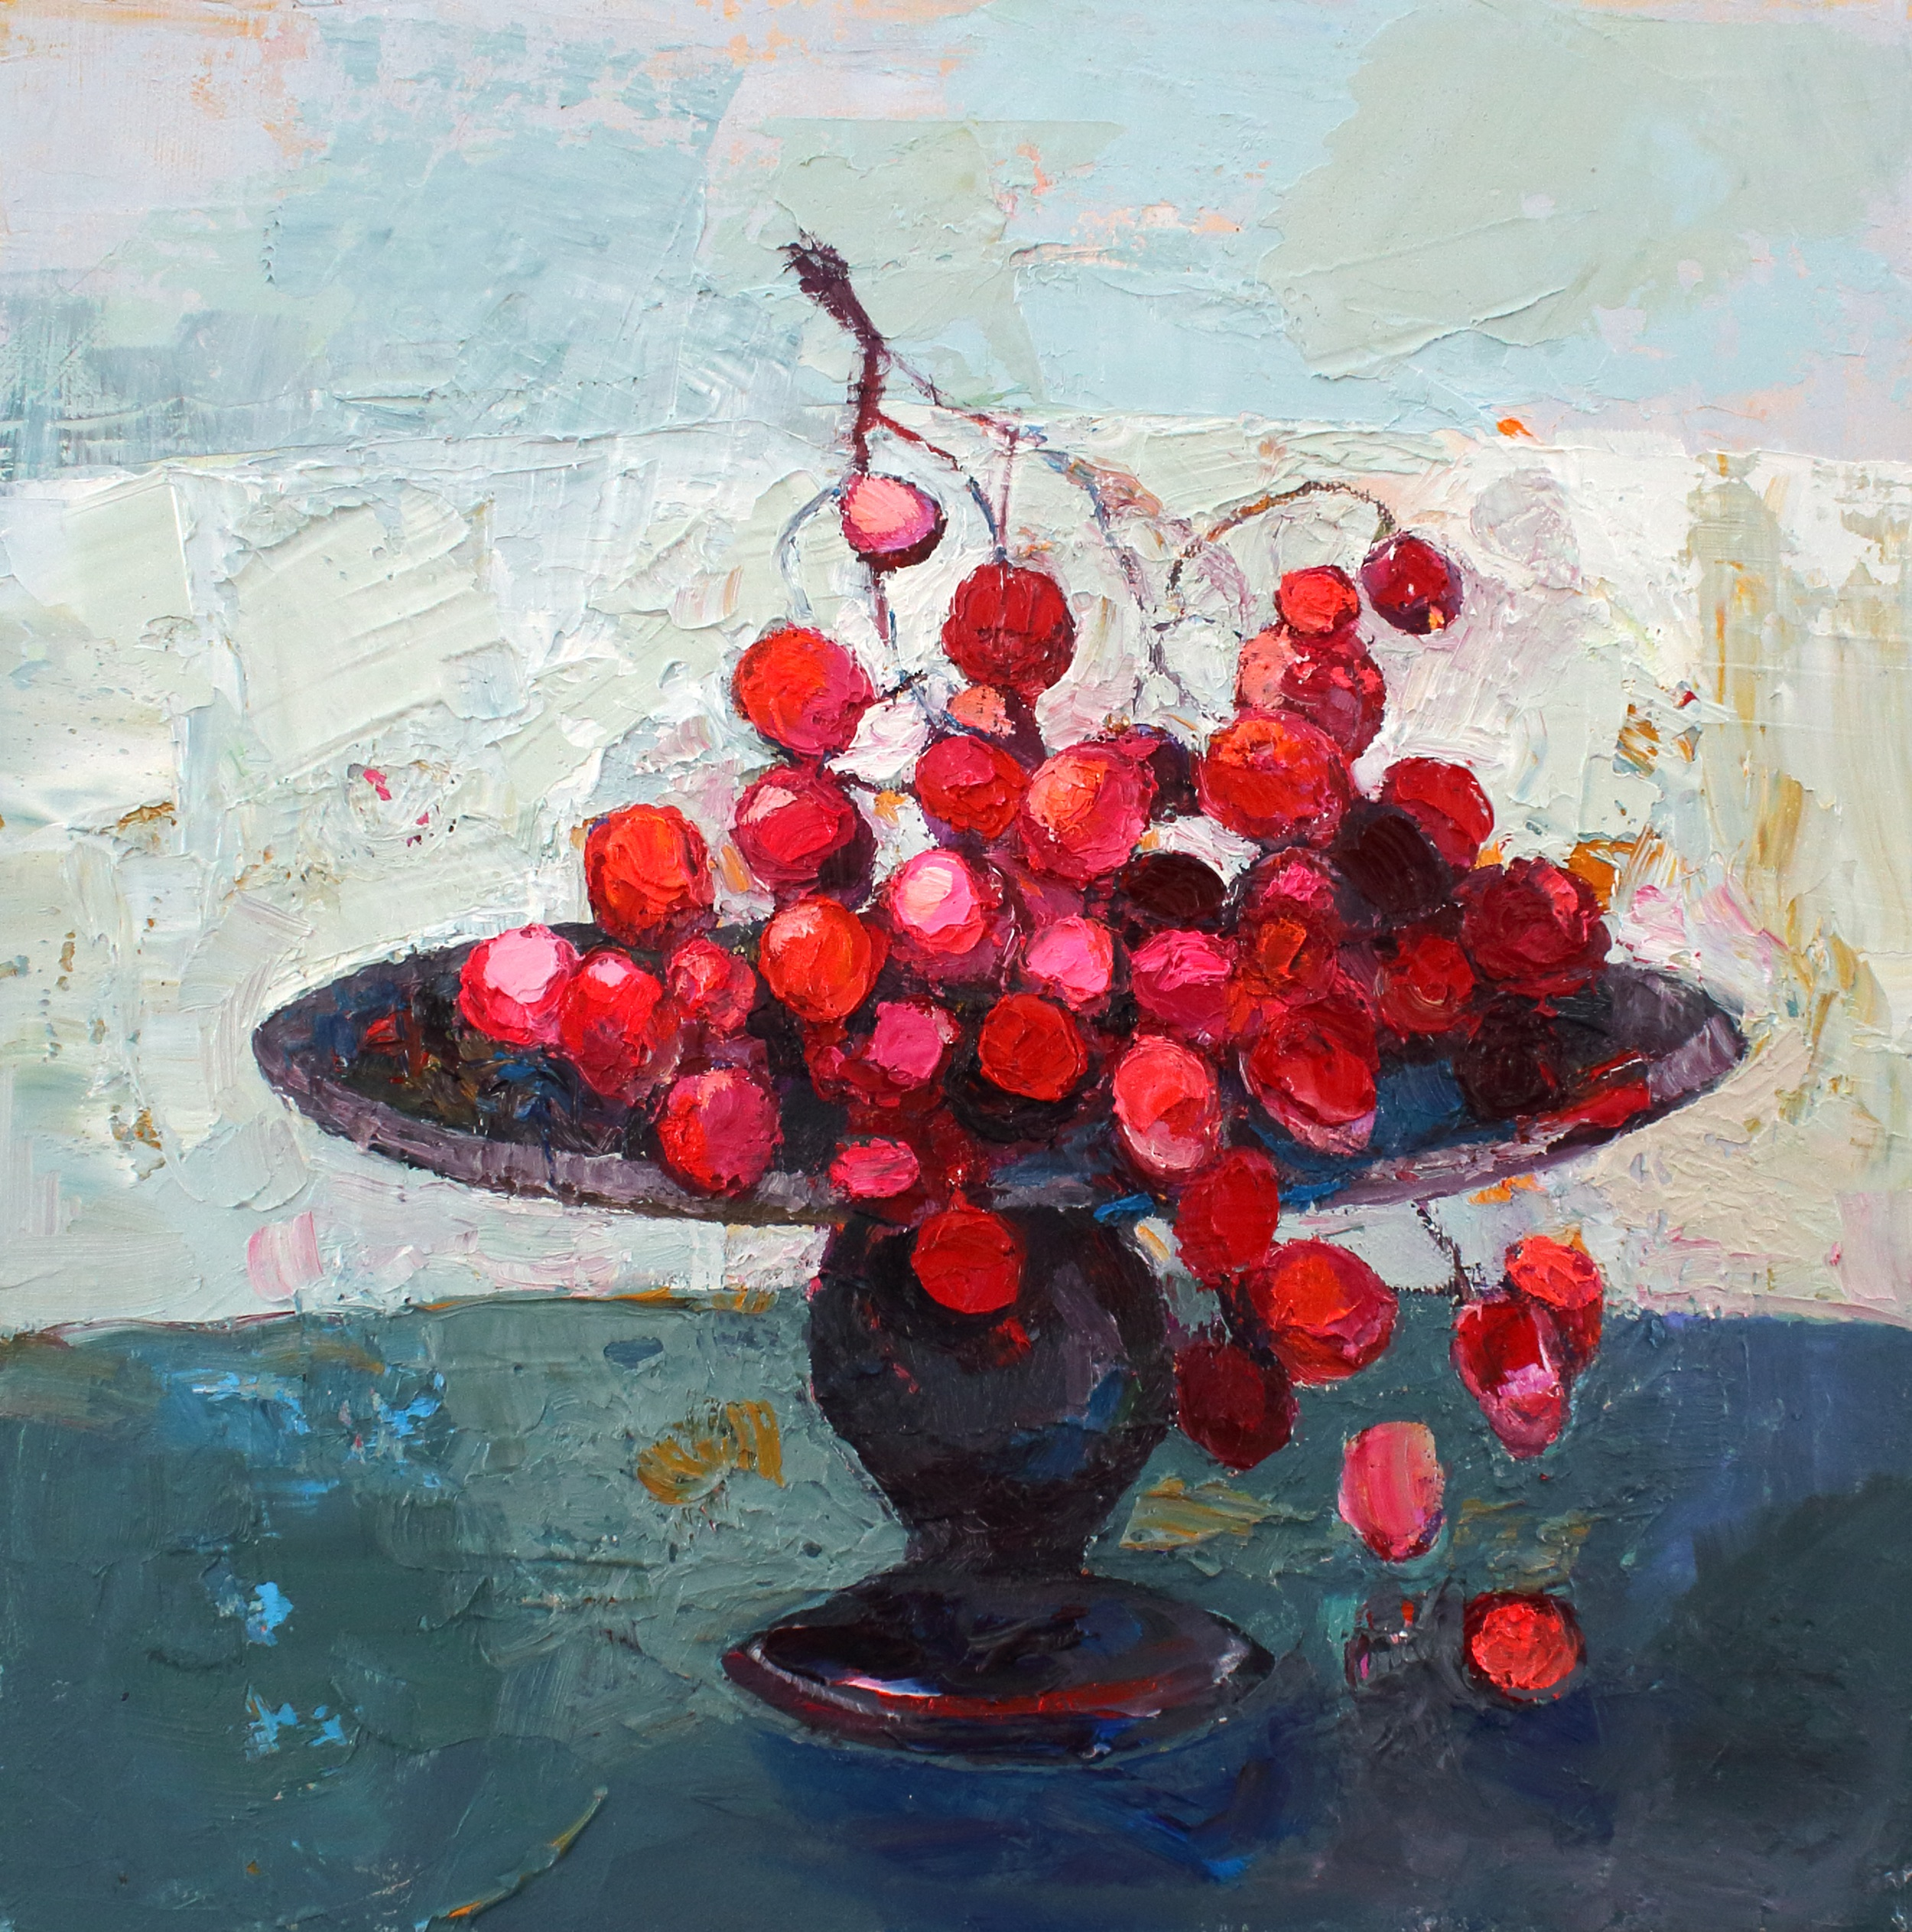 Title: Flaming Grapes Size: 12 x 12 inches Medium: Oil on Canvas Price: £1700